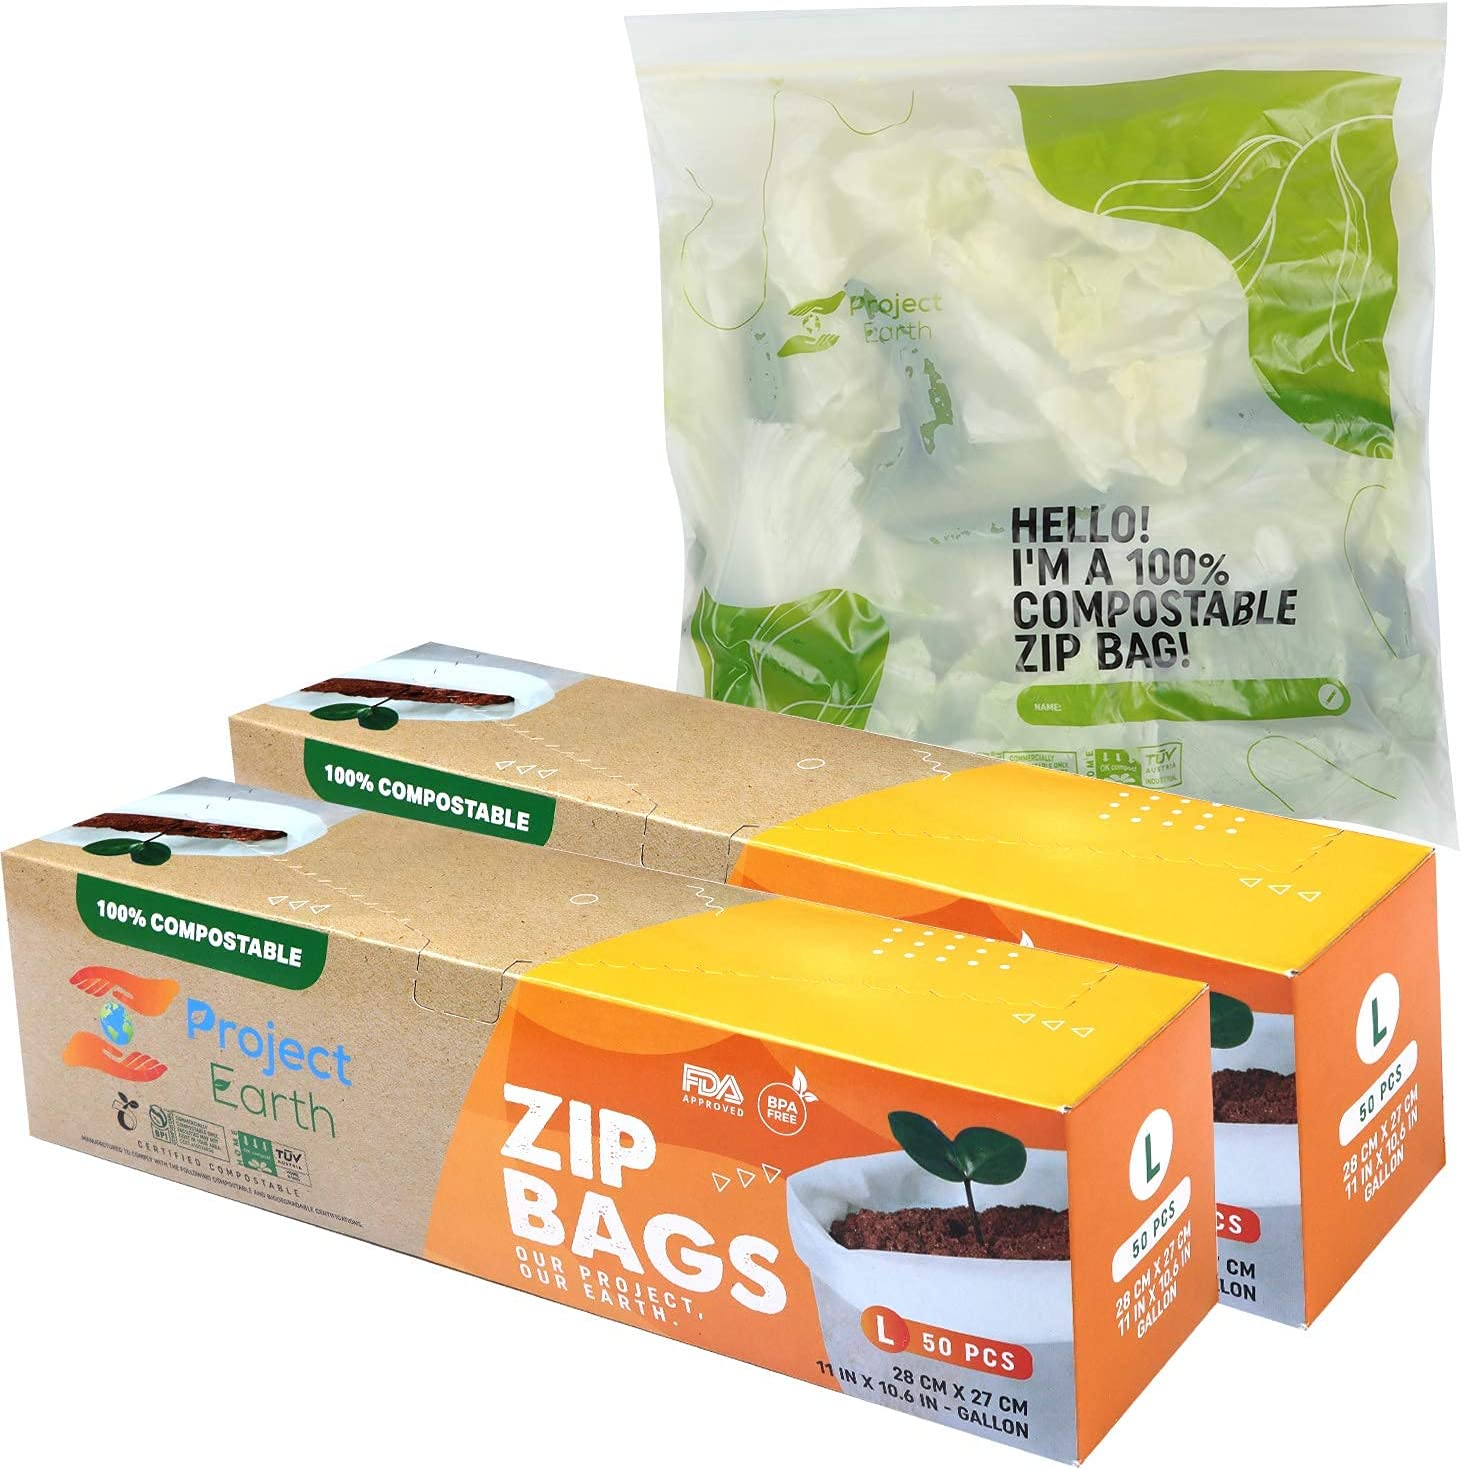 Project Earth Compostable Zip Bags, 100 Count Gallon, 2 Pack | Freezer, Sandwich, Food Storage & More | Resealable Lock | Eco Responsible Product |